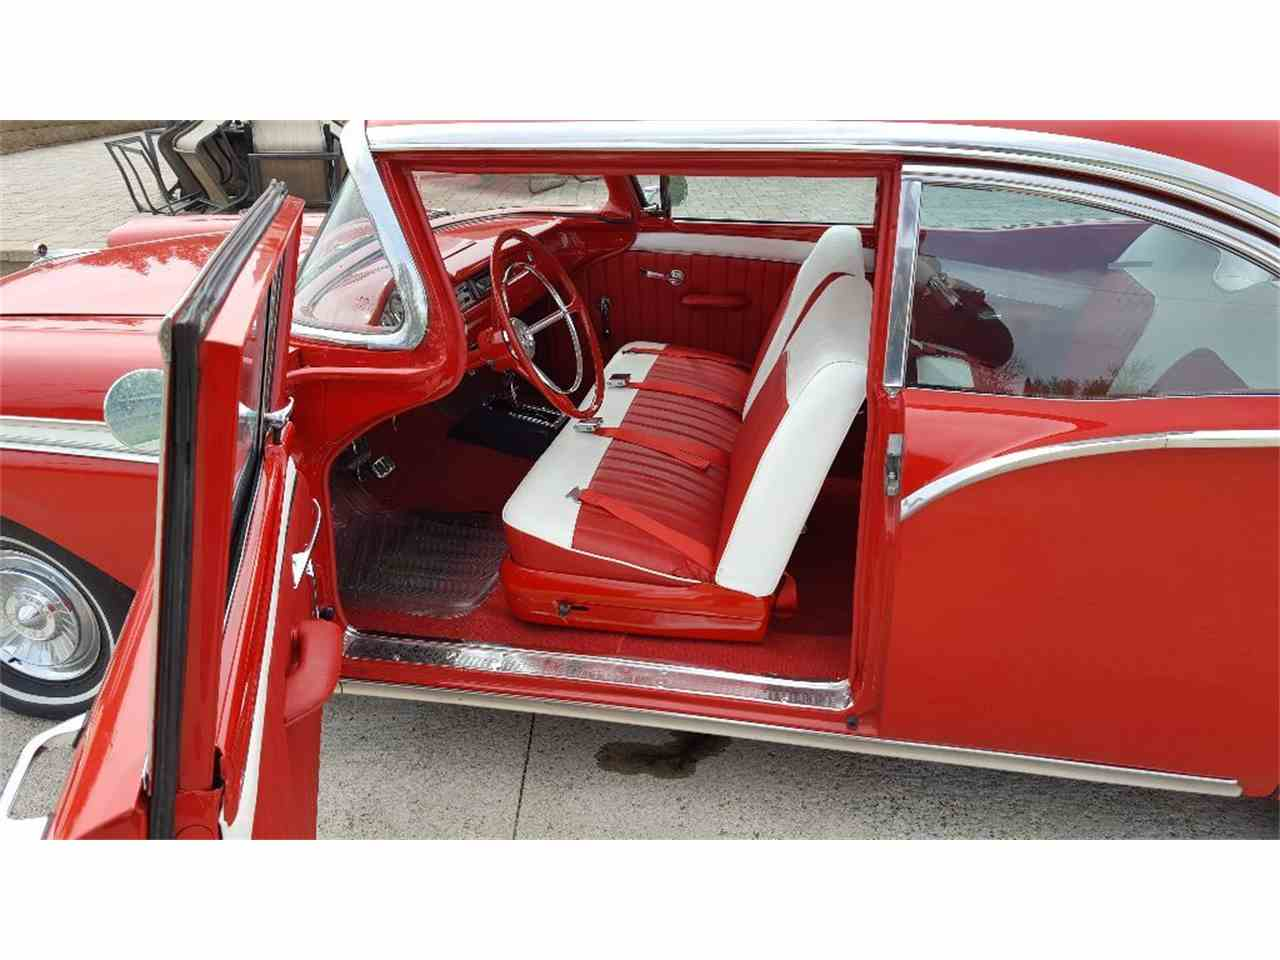 Large Picture of 1957 Ford Fairlane Auction Vehicle Offered by Classic Rides and Rods - HP38